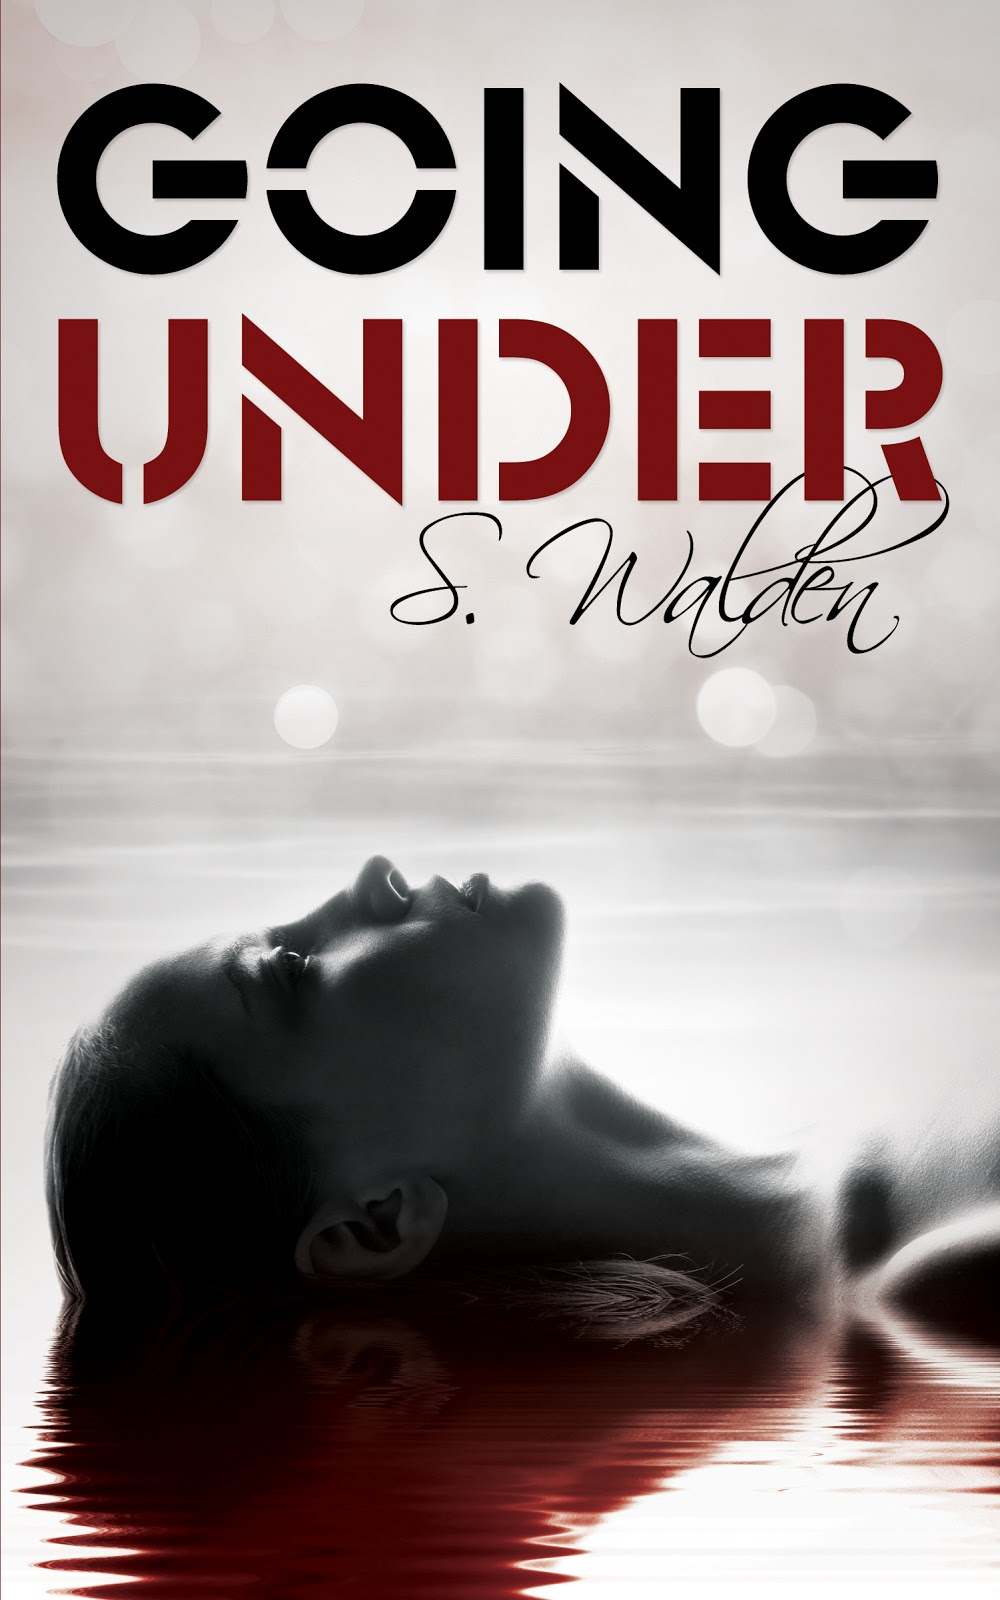 Here's the link: http://books.usatoday.com/book/s-walden-going-under/l49767.  Thank you everyone for supporting me. You are the greatest fans.